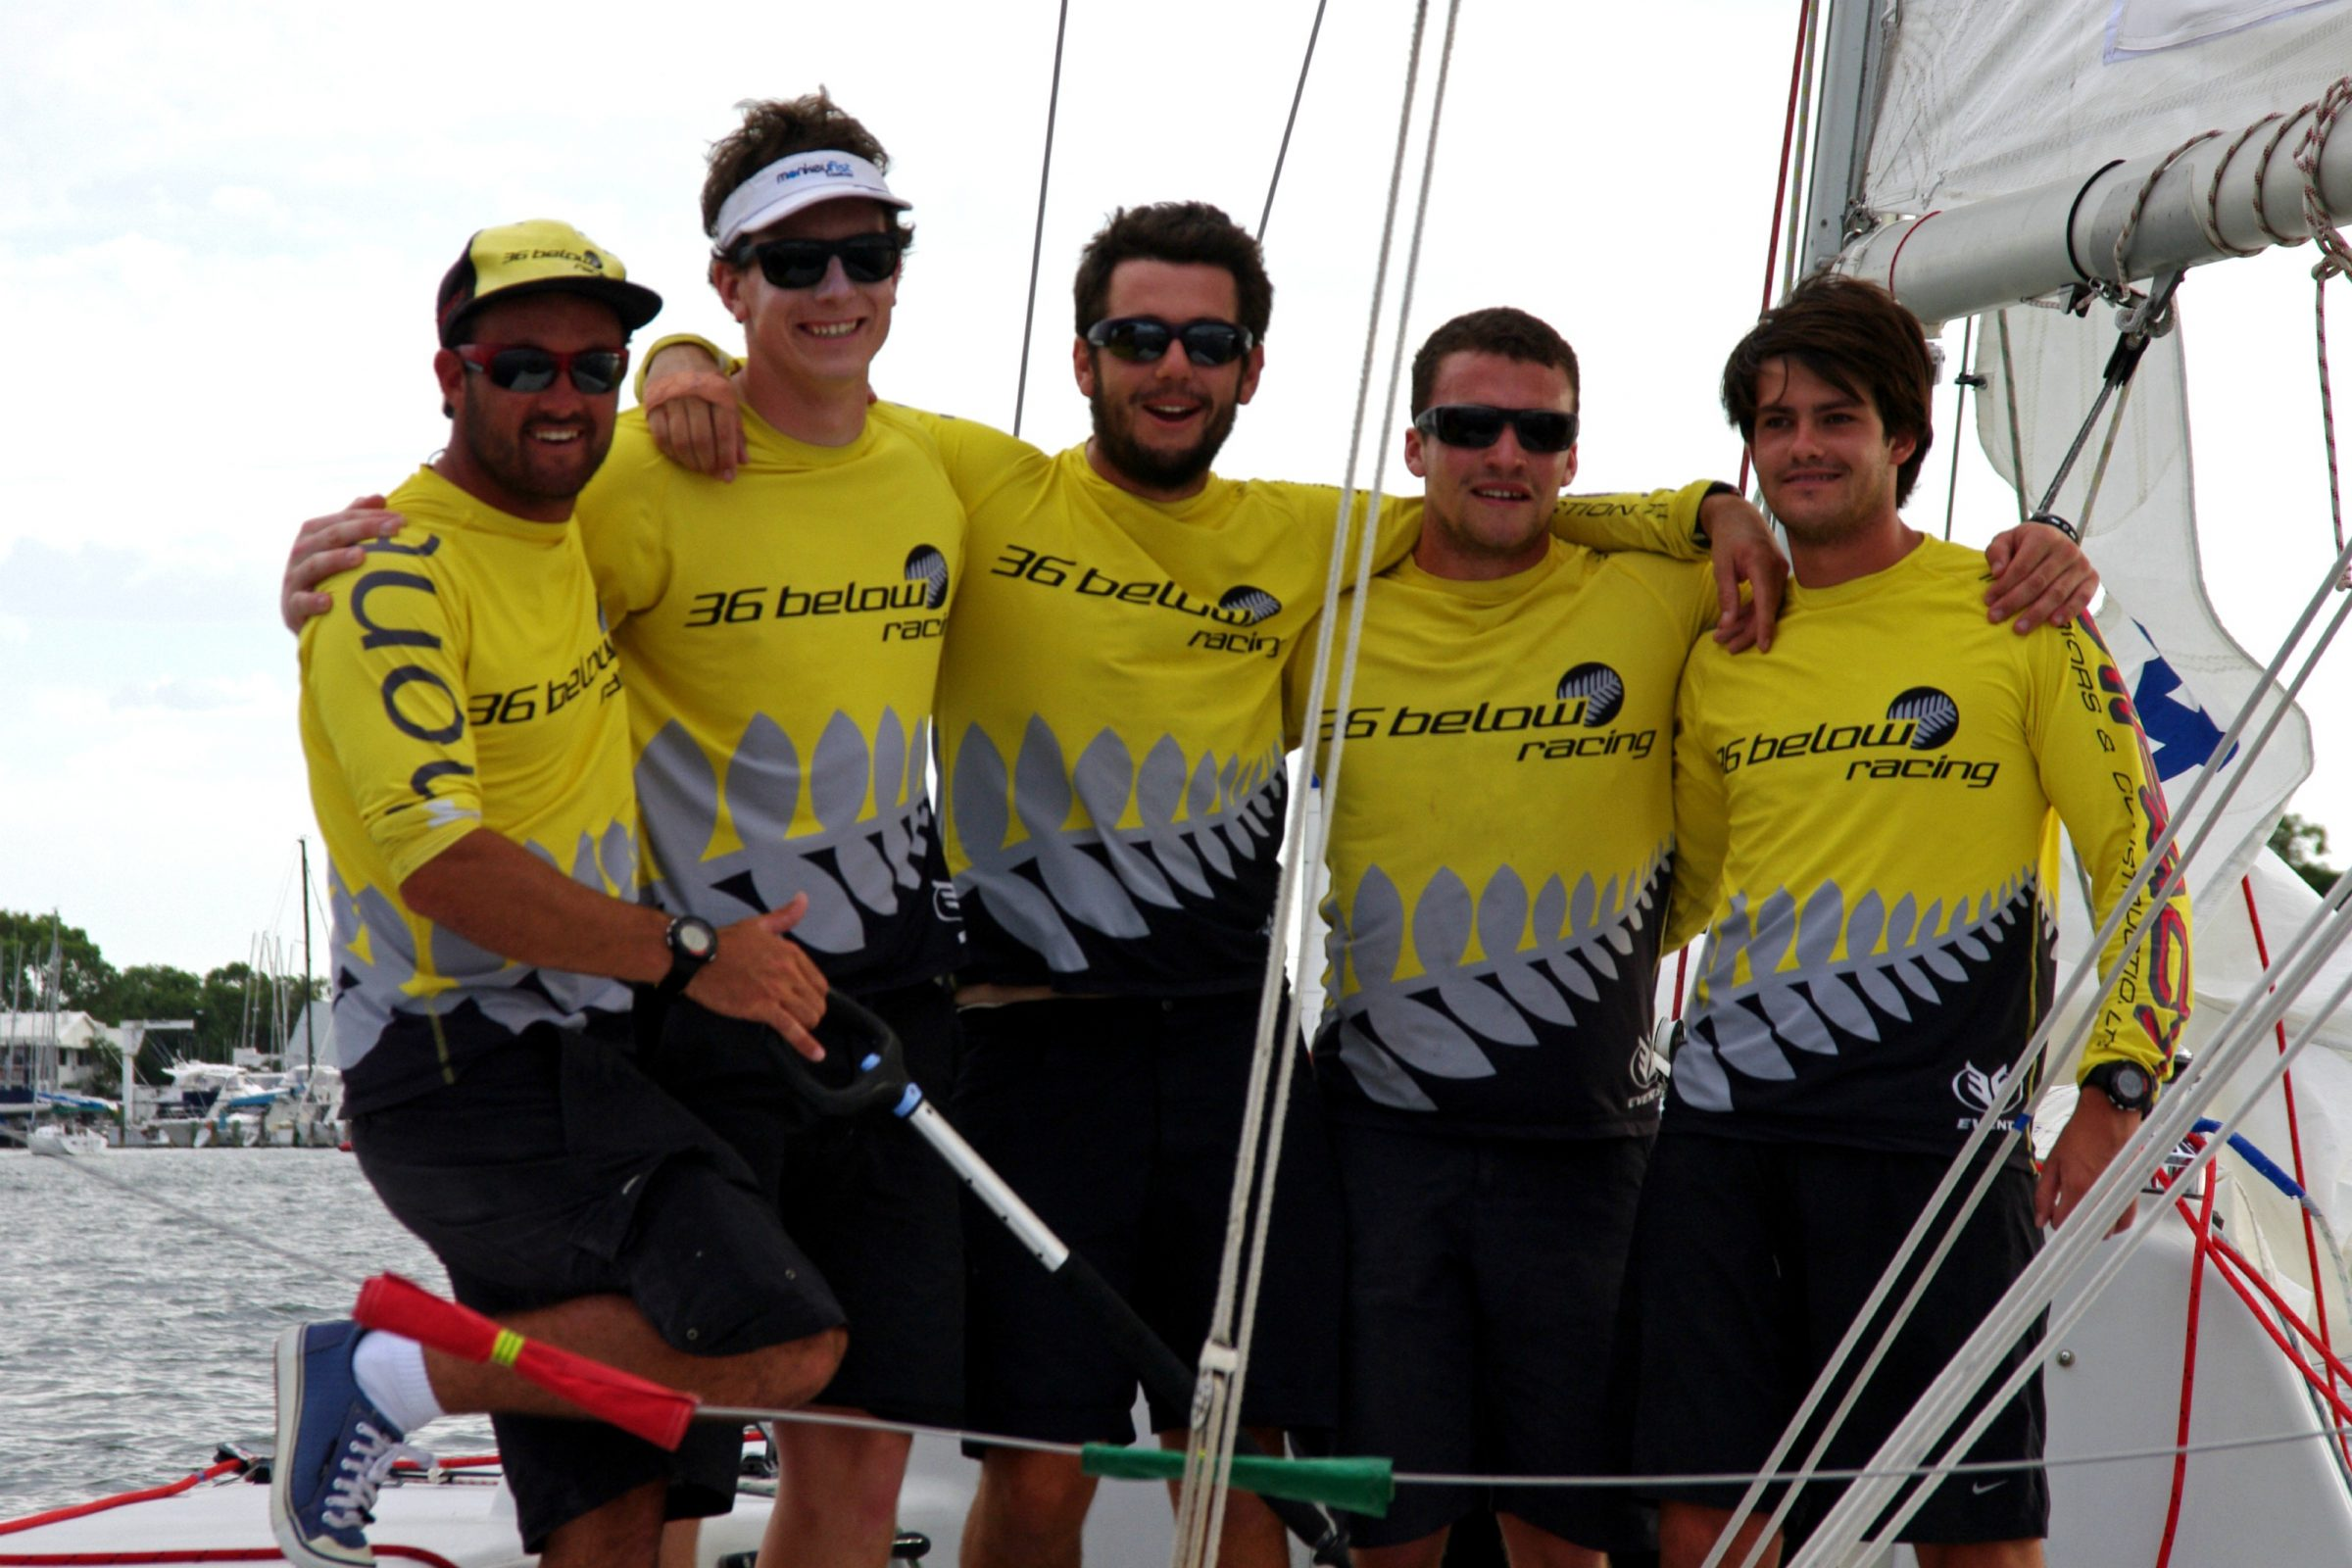 36 below racing, skippered by Chris Steele from the royal new zealand yacht squadron , winners of the 2015 warren jones international youth regatta, organised by swan river sailing, an iconic youth match racing regatta in perth, western australia